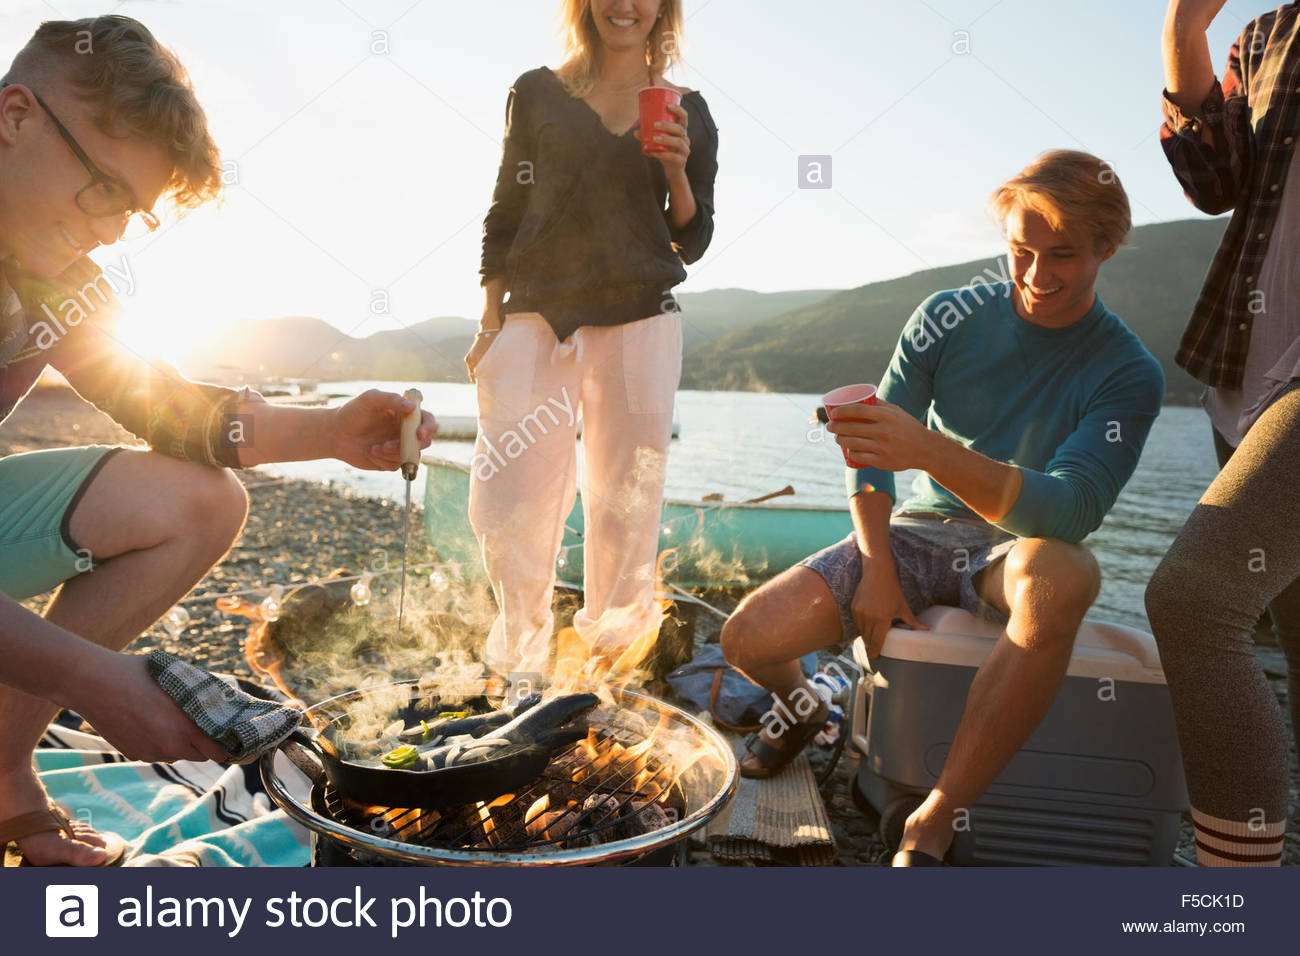 Young friends cooking at lakeside campfire - Stock Image